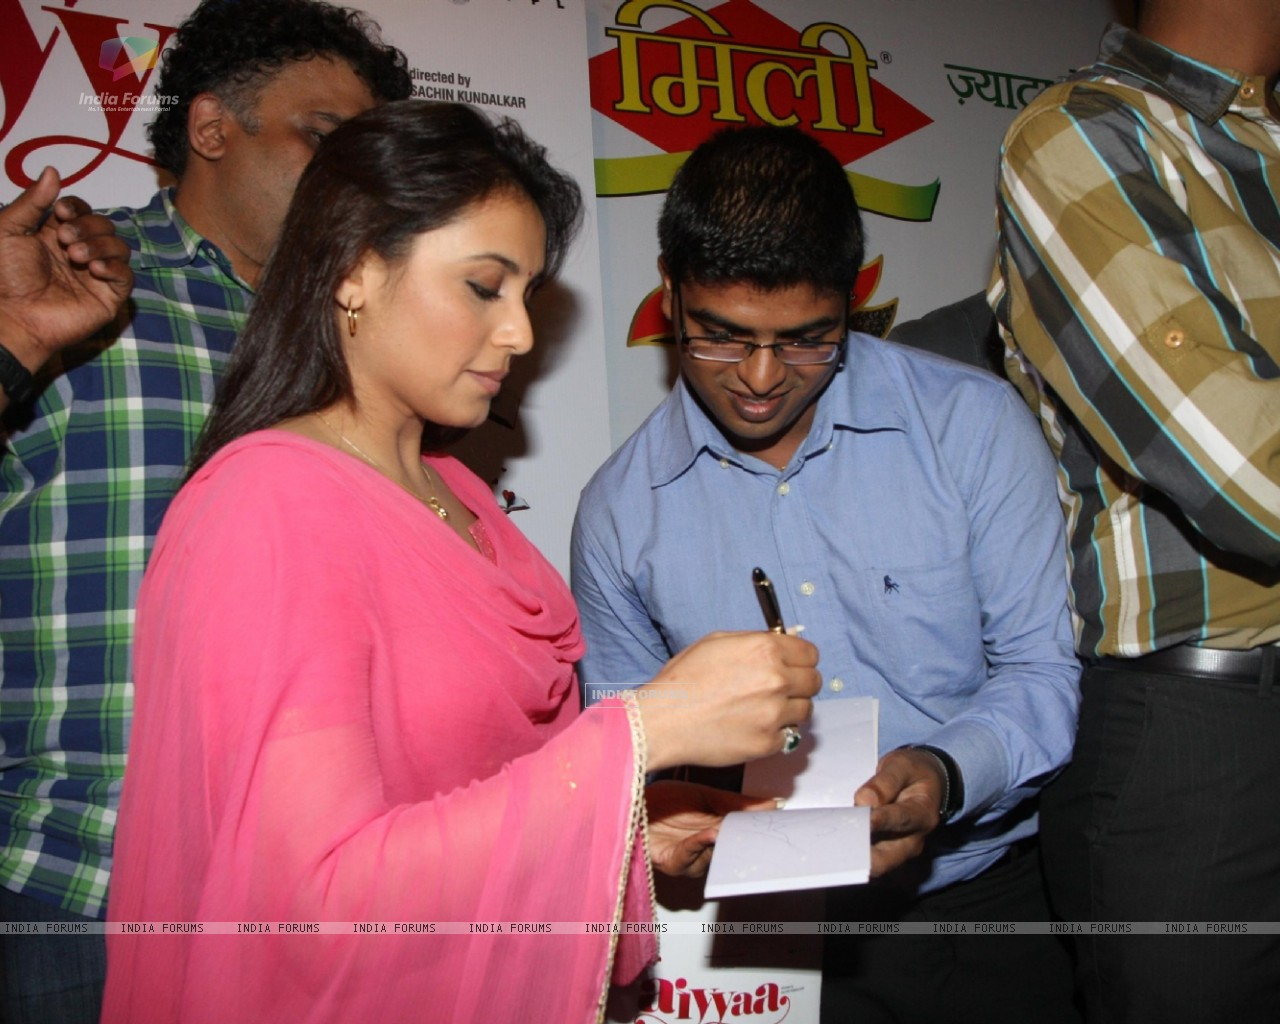 Bollywood actress Rani Mukherji with Director Anurag Kashyap promoting Aiyyaa with Chaha Poha (Tea and Maharashtrian Snack Poha) at Wagh Bakri Tea Lounge in Mumbai (230483) size:1280x1024